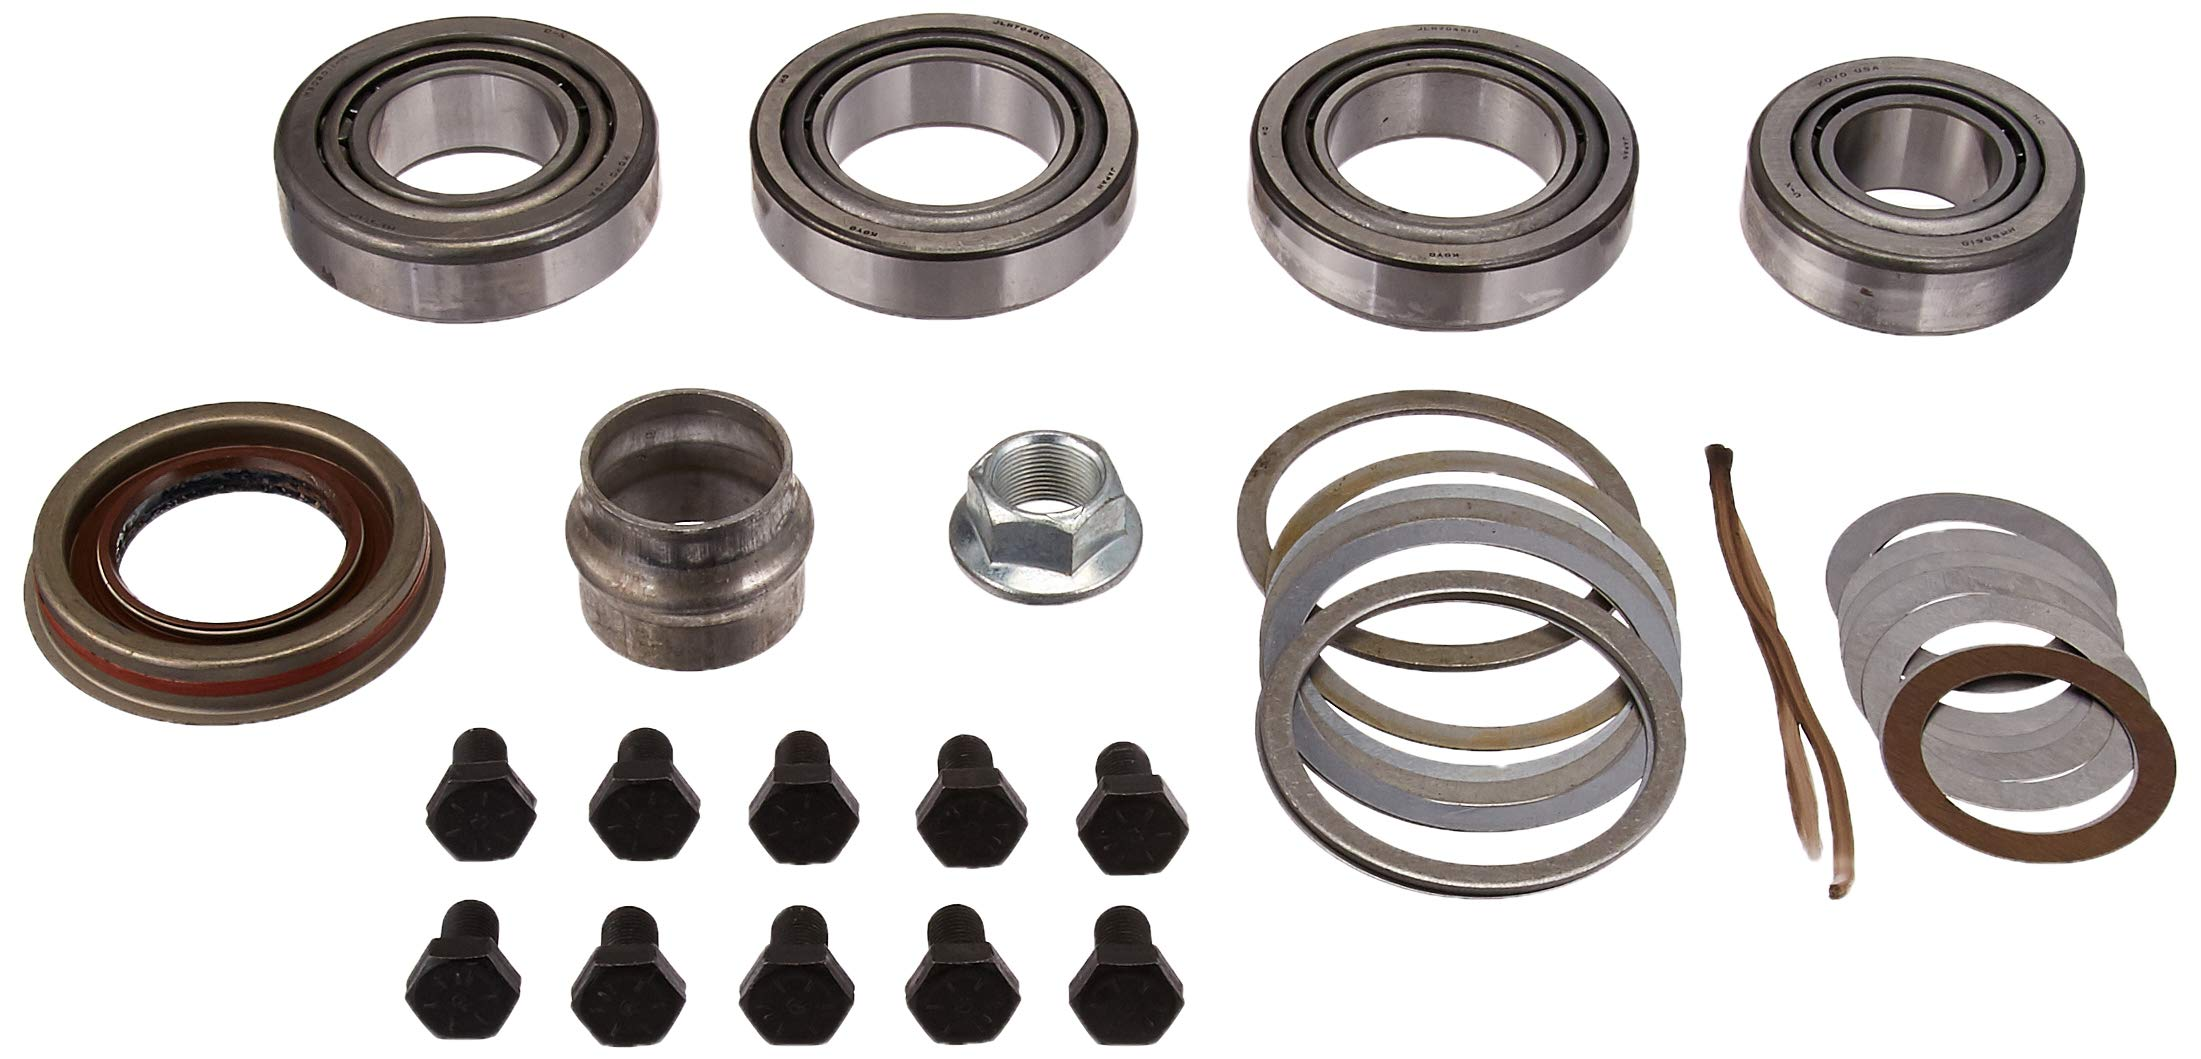 ExCel XL-1075-1 Bearing Master Kit (DANA 44 JEEP JK), 1 Pack